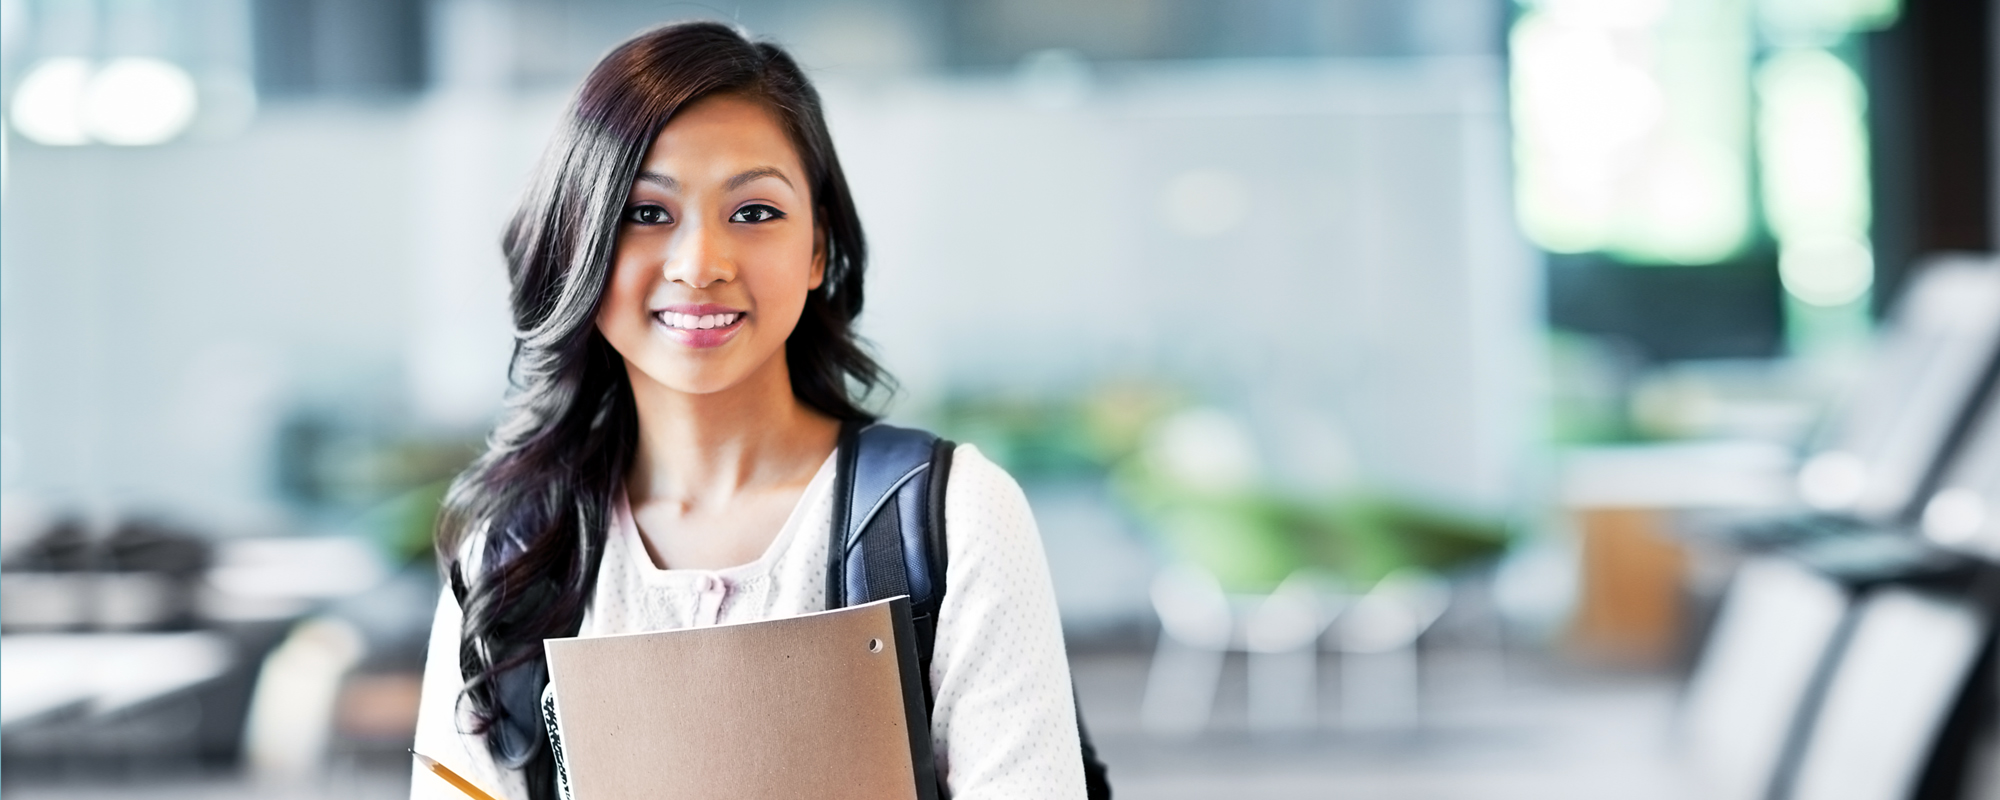 Higher National Diploma Program in Business offered by Westford University College UAE & KSA